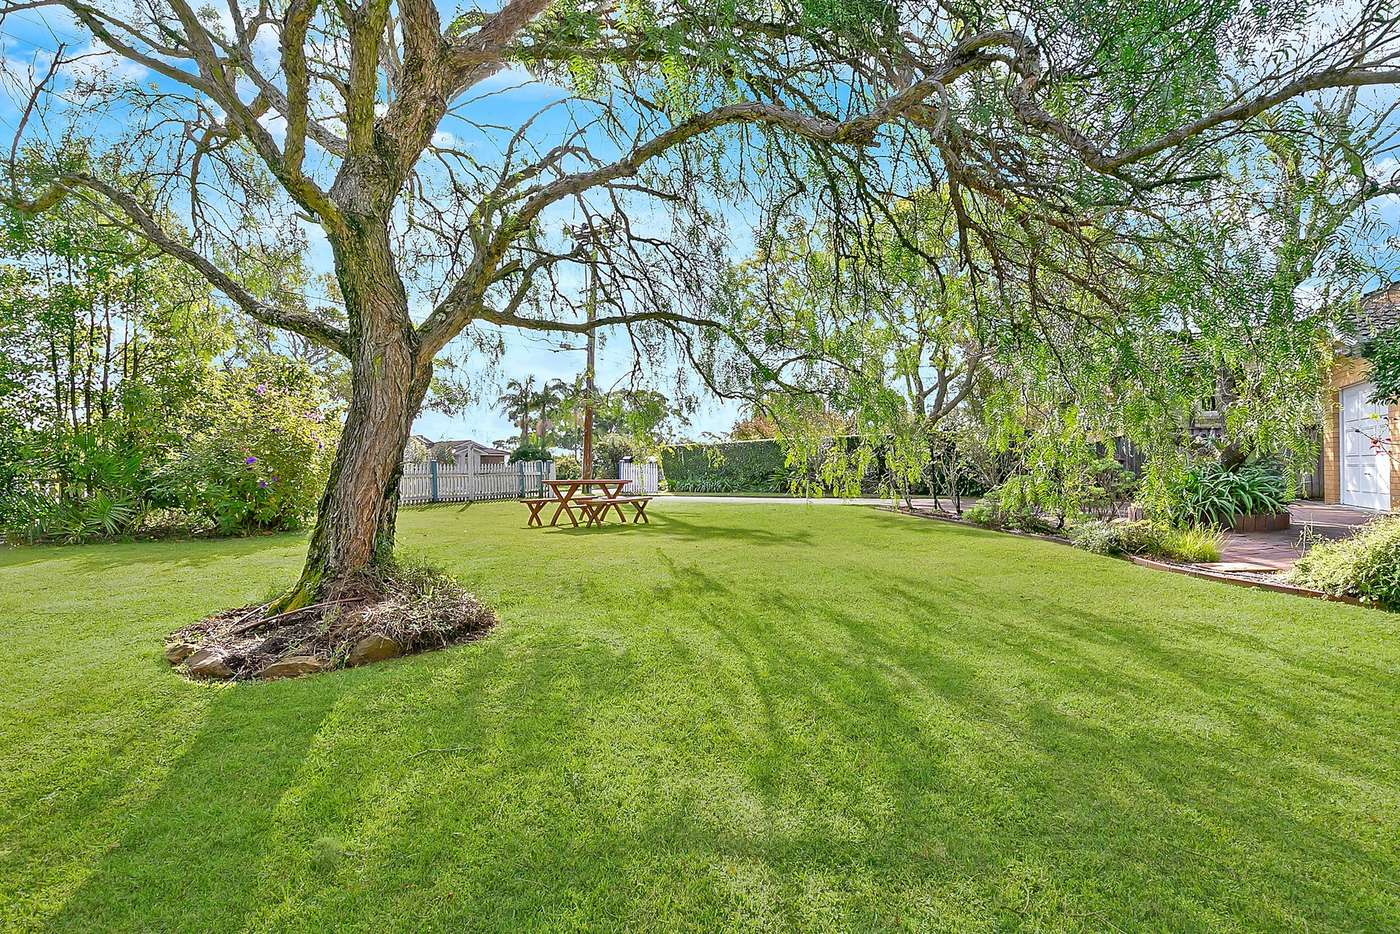 Main view of Homely house listing, 101 Warrimoo Avenue, St Ives NSW 2075